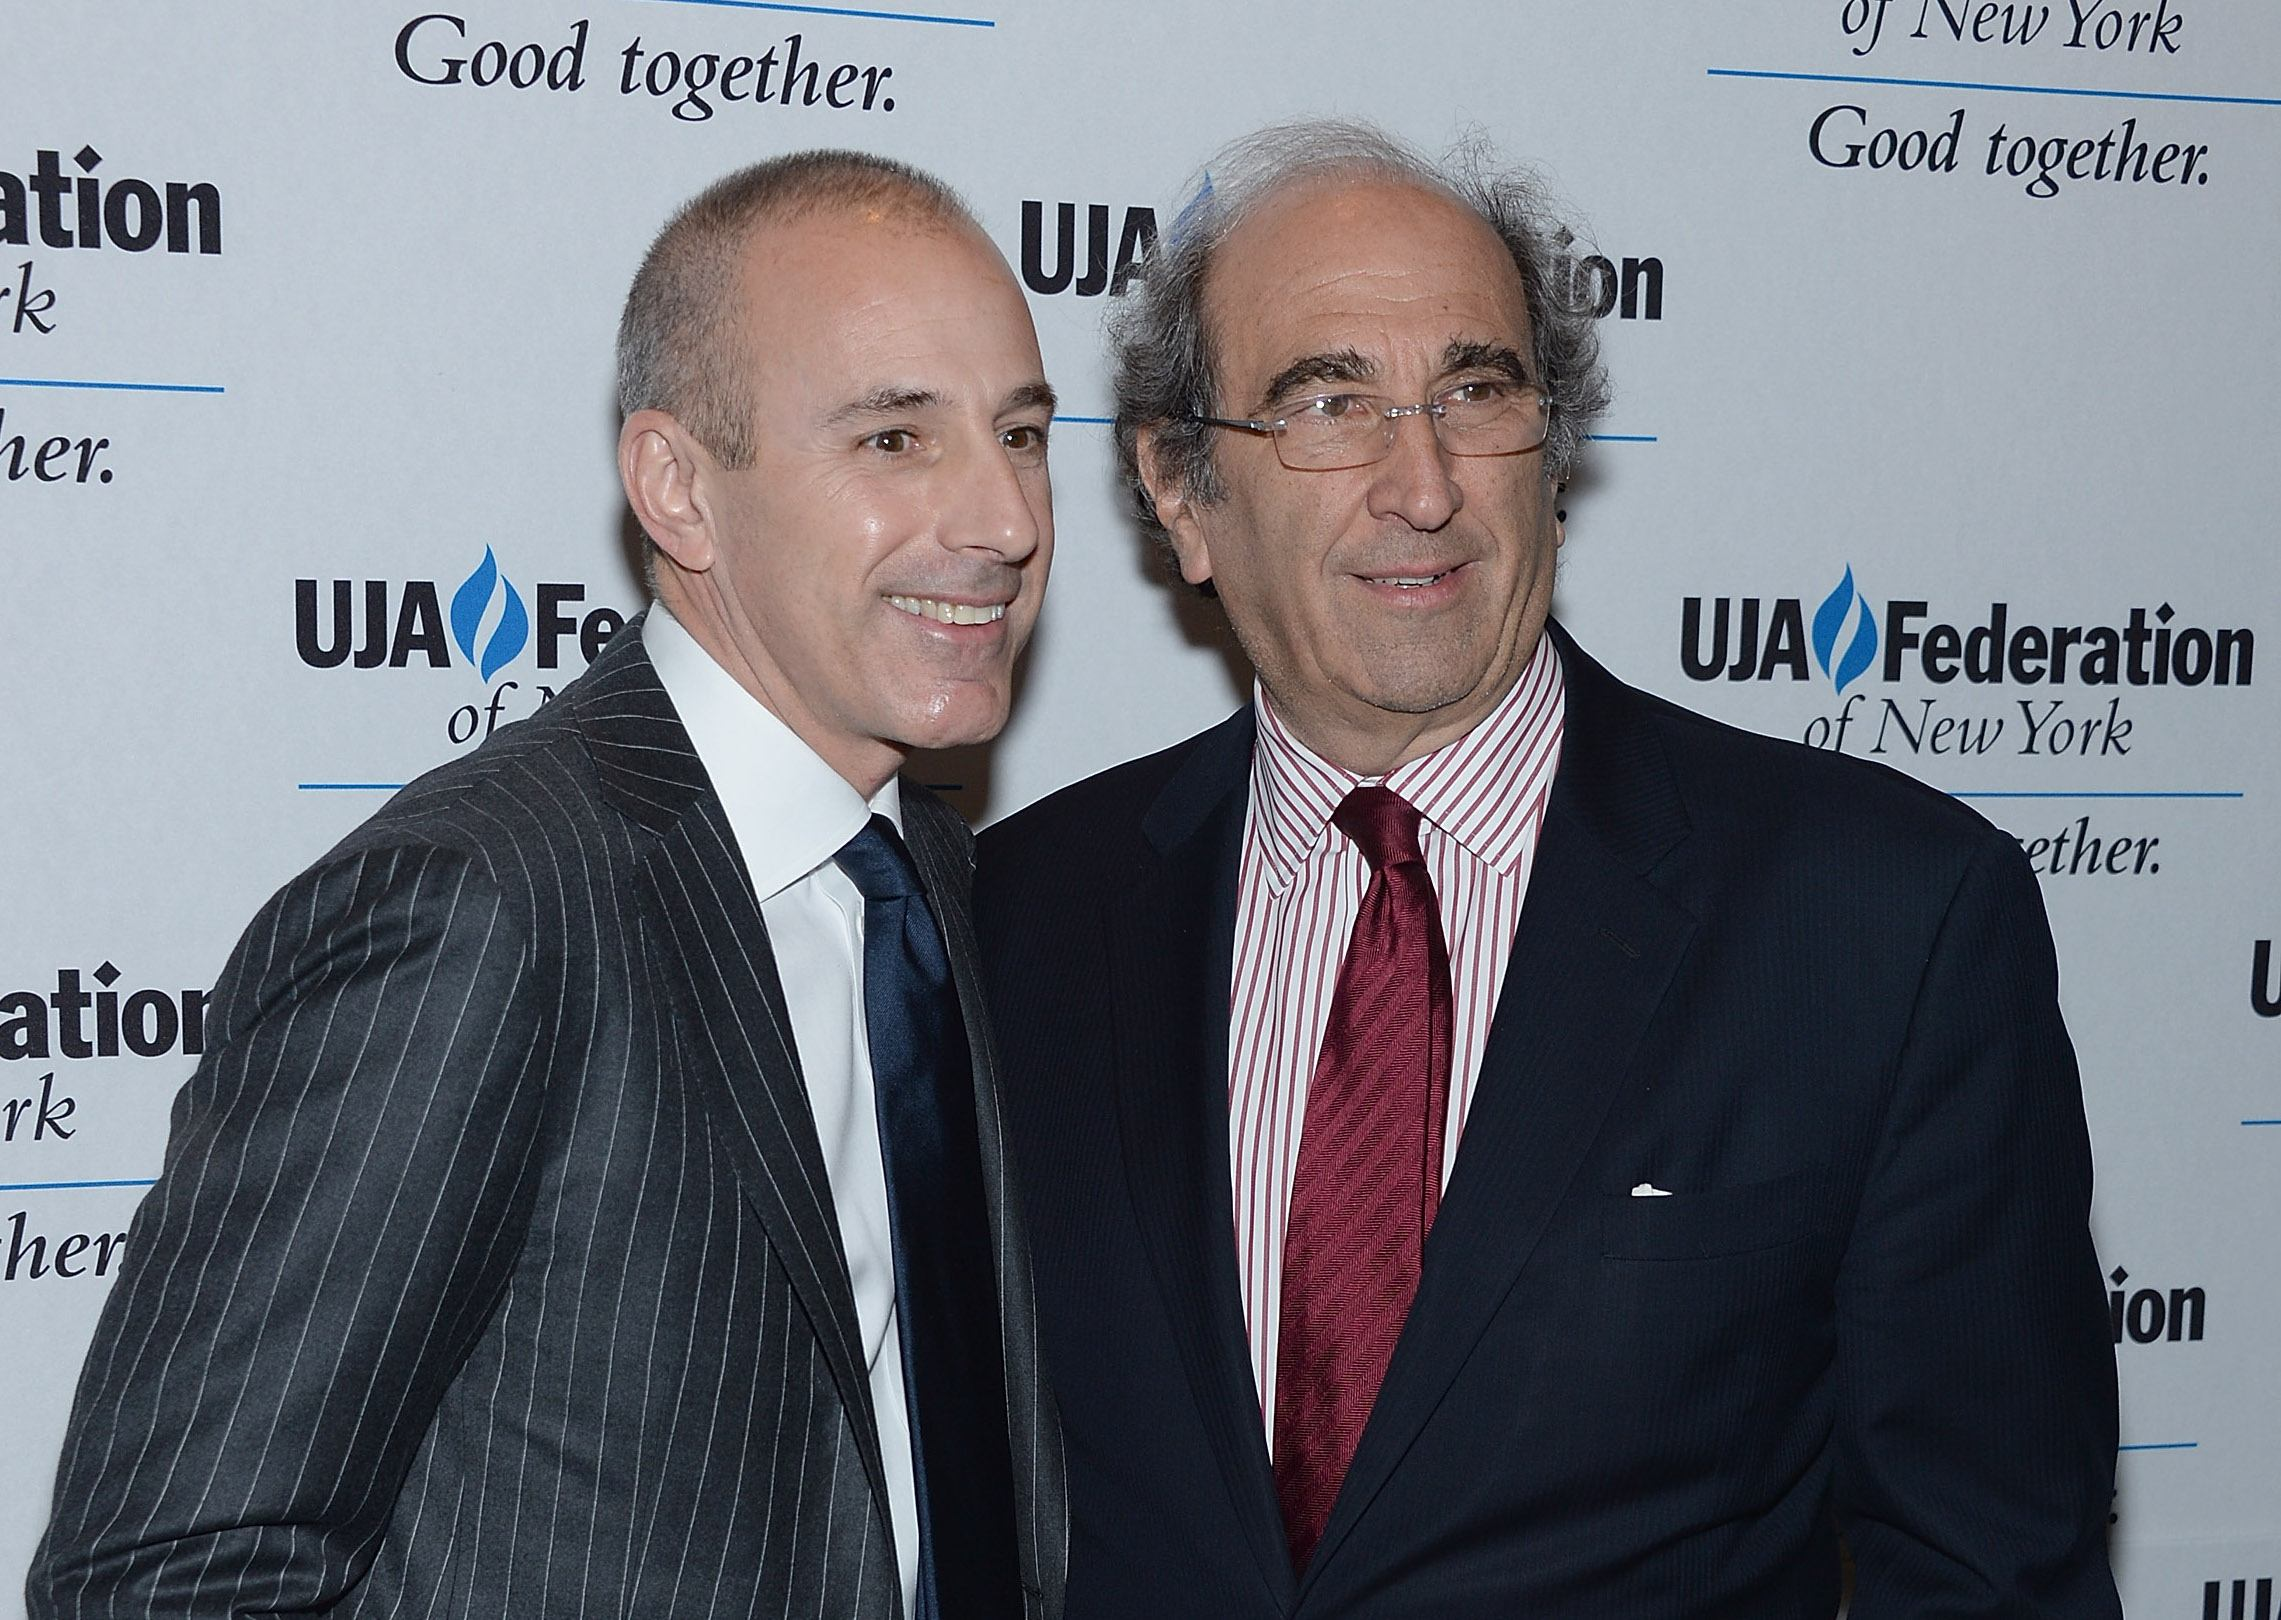 Matt Lauer and NBC exec, Andy Lack